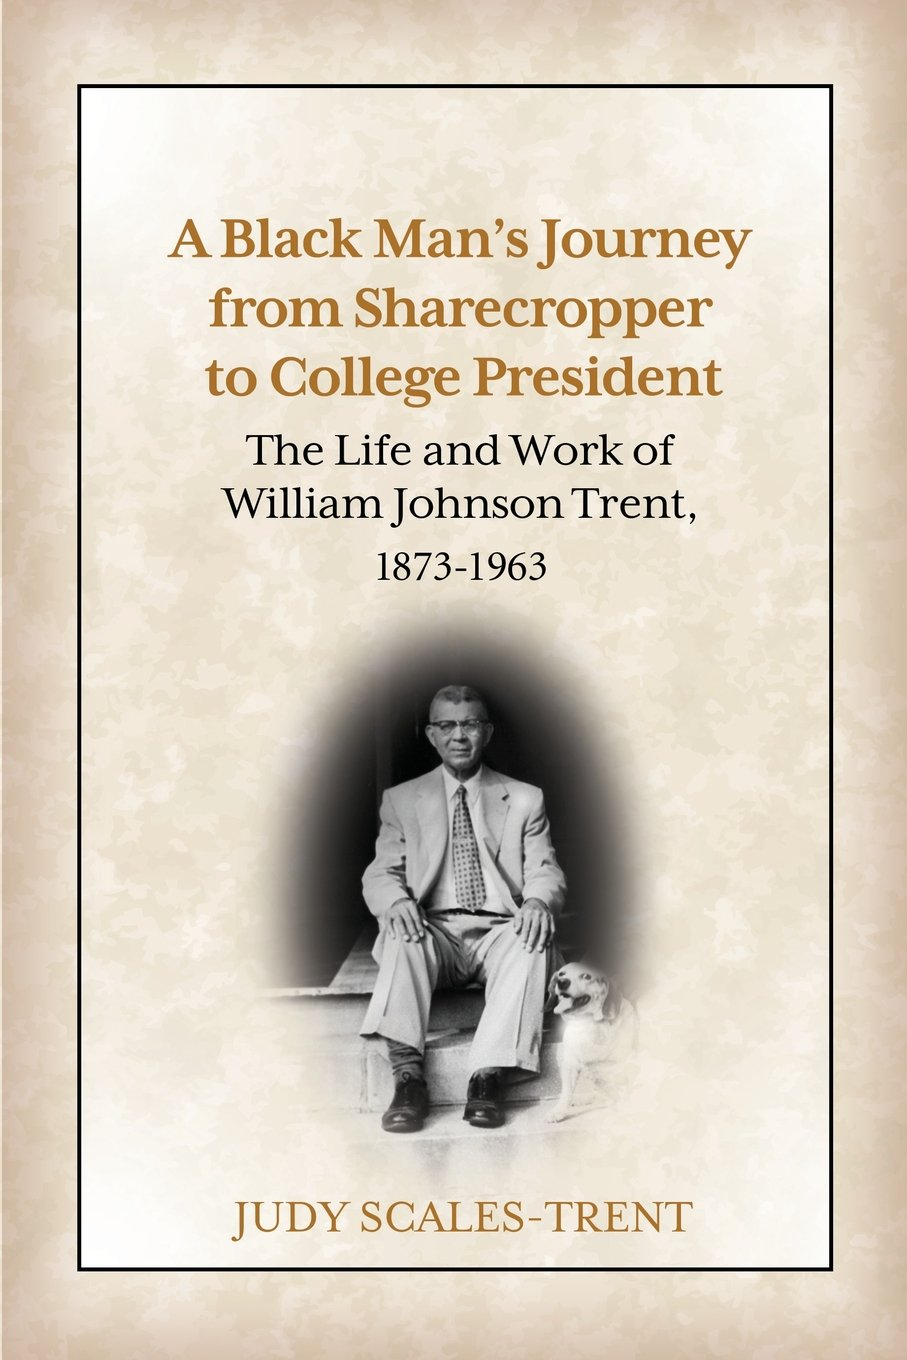 Download A Black Man's Journey from Sharecropper to College President: The Life and Work of William Johnson Trent, 1873-1963 pdf